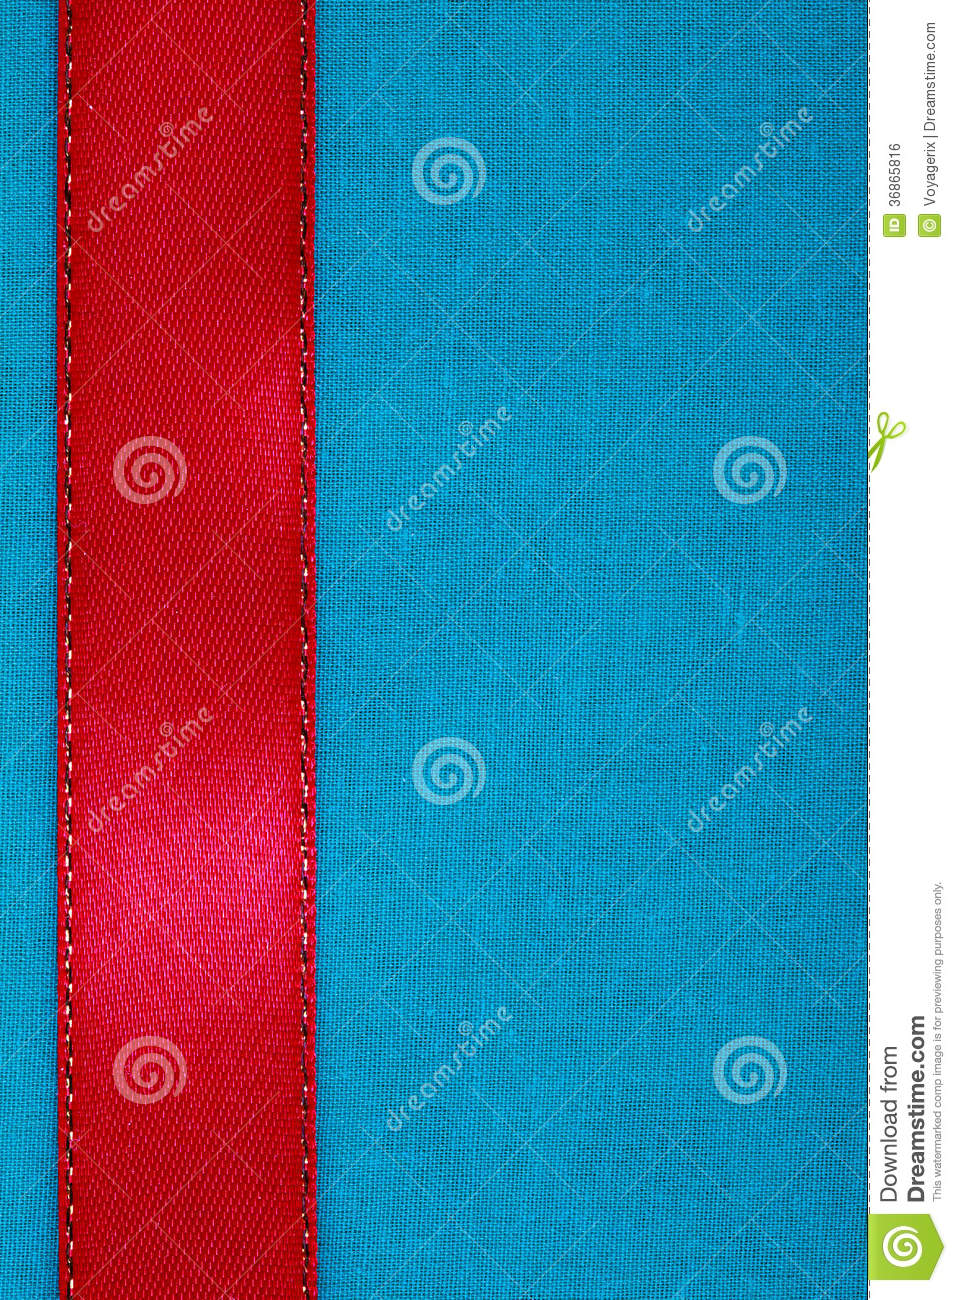 red ribbon on blue fabric background with copy space